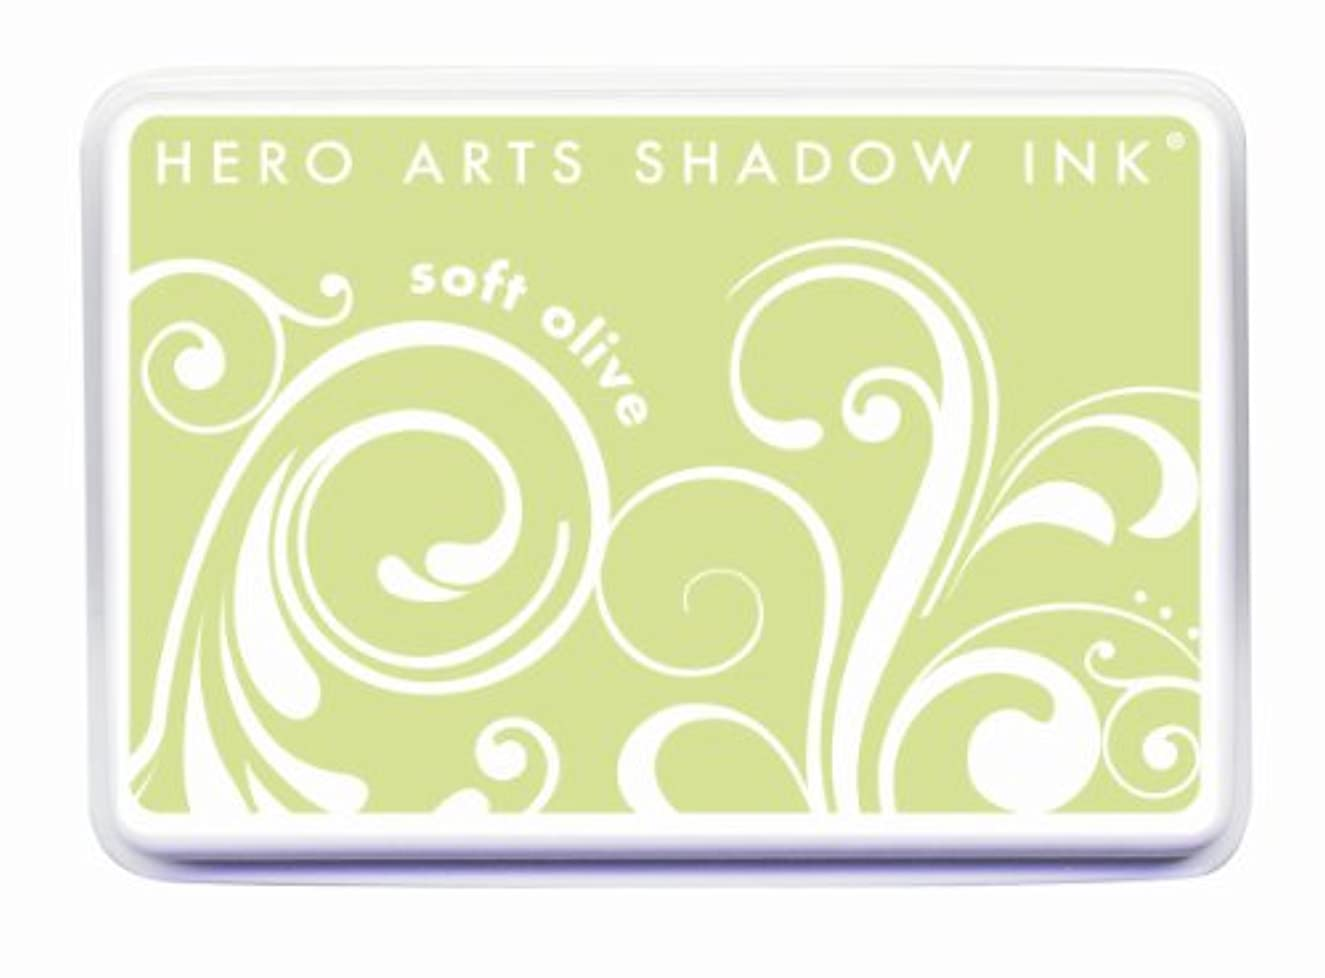 Hero Arts Rubber Stamps Shadow Ink Stamp Pad, Soft Olive